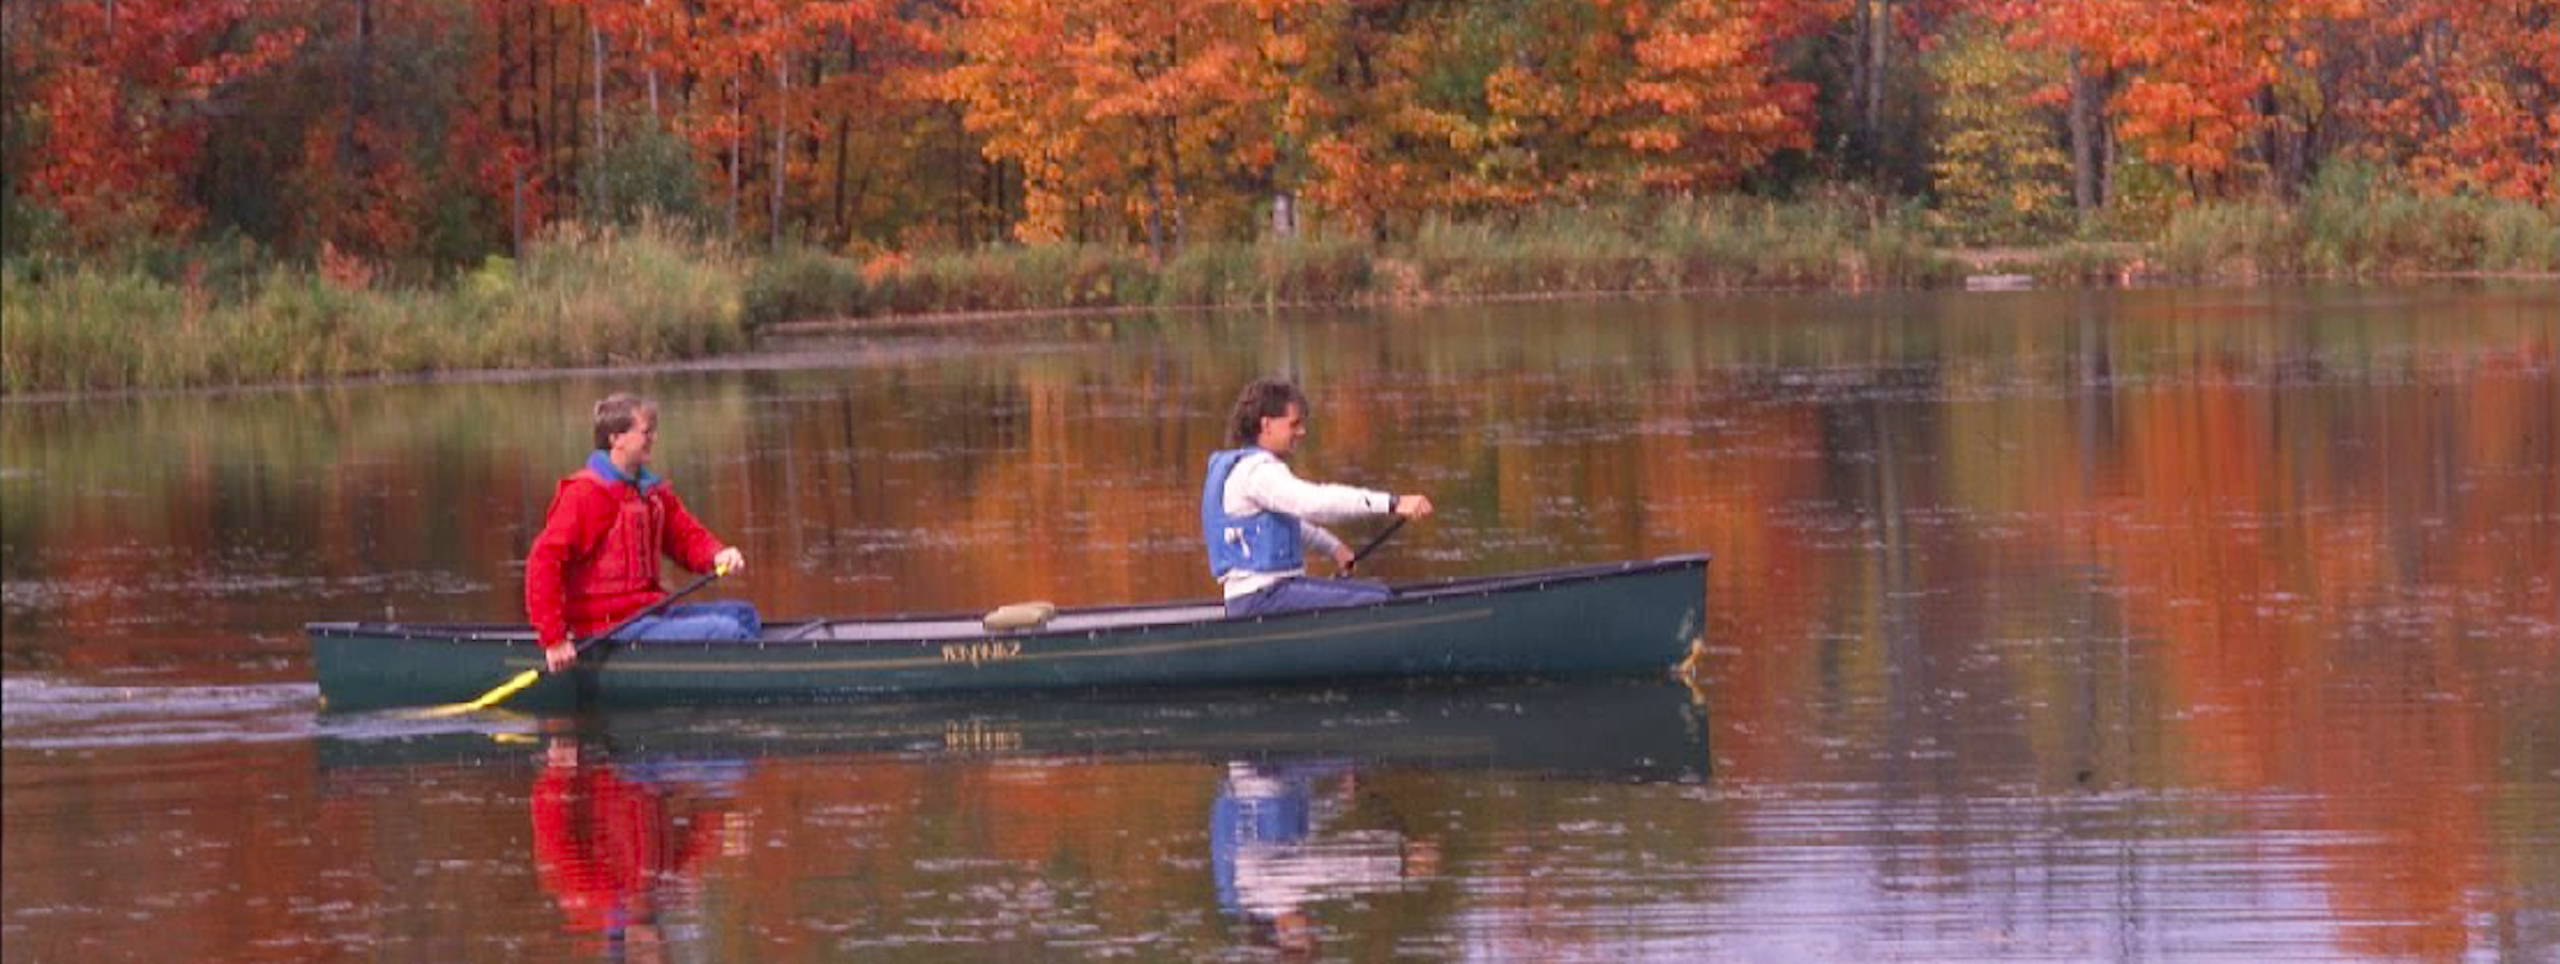 UMD students in a canoe on Bagley Pond